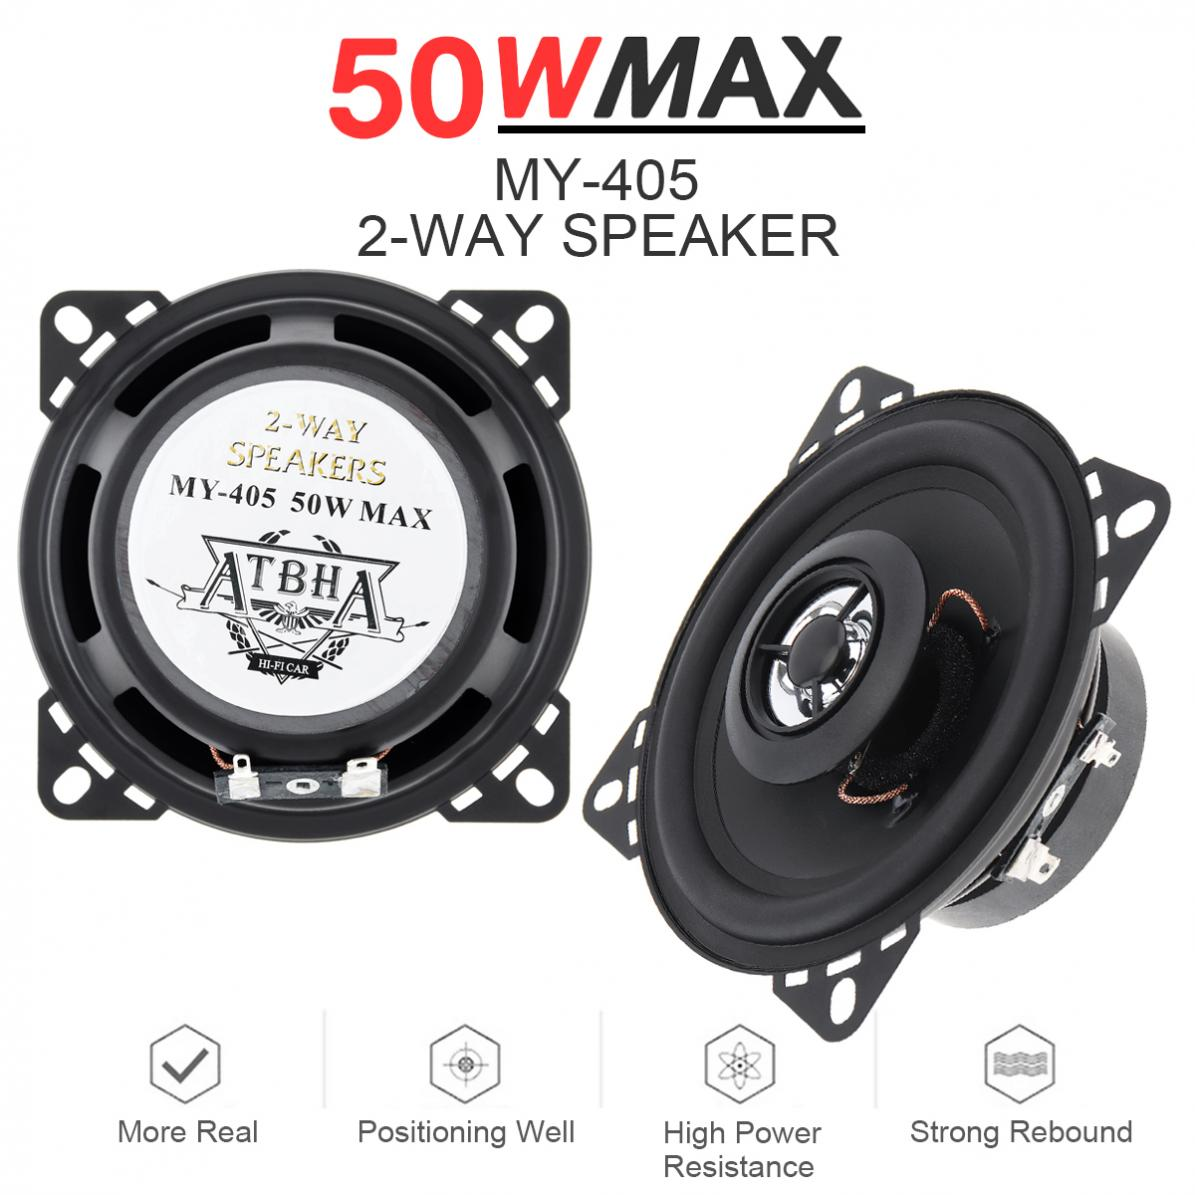 1pcs 4 Inch 12V 10mm <font><b>50W</b></font> 2-Way Car HiFi Coaxial <font><b>Speaker</b></font> Vehicle Door Auto Audio Music Stereo Full Range Frequency <font><b>Speakers</b></font> image